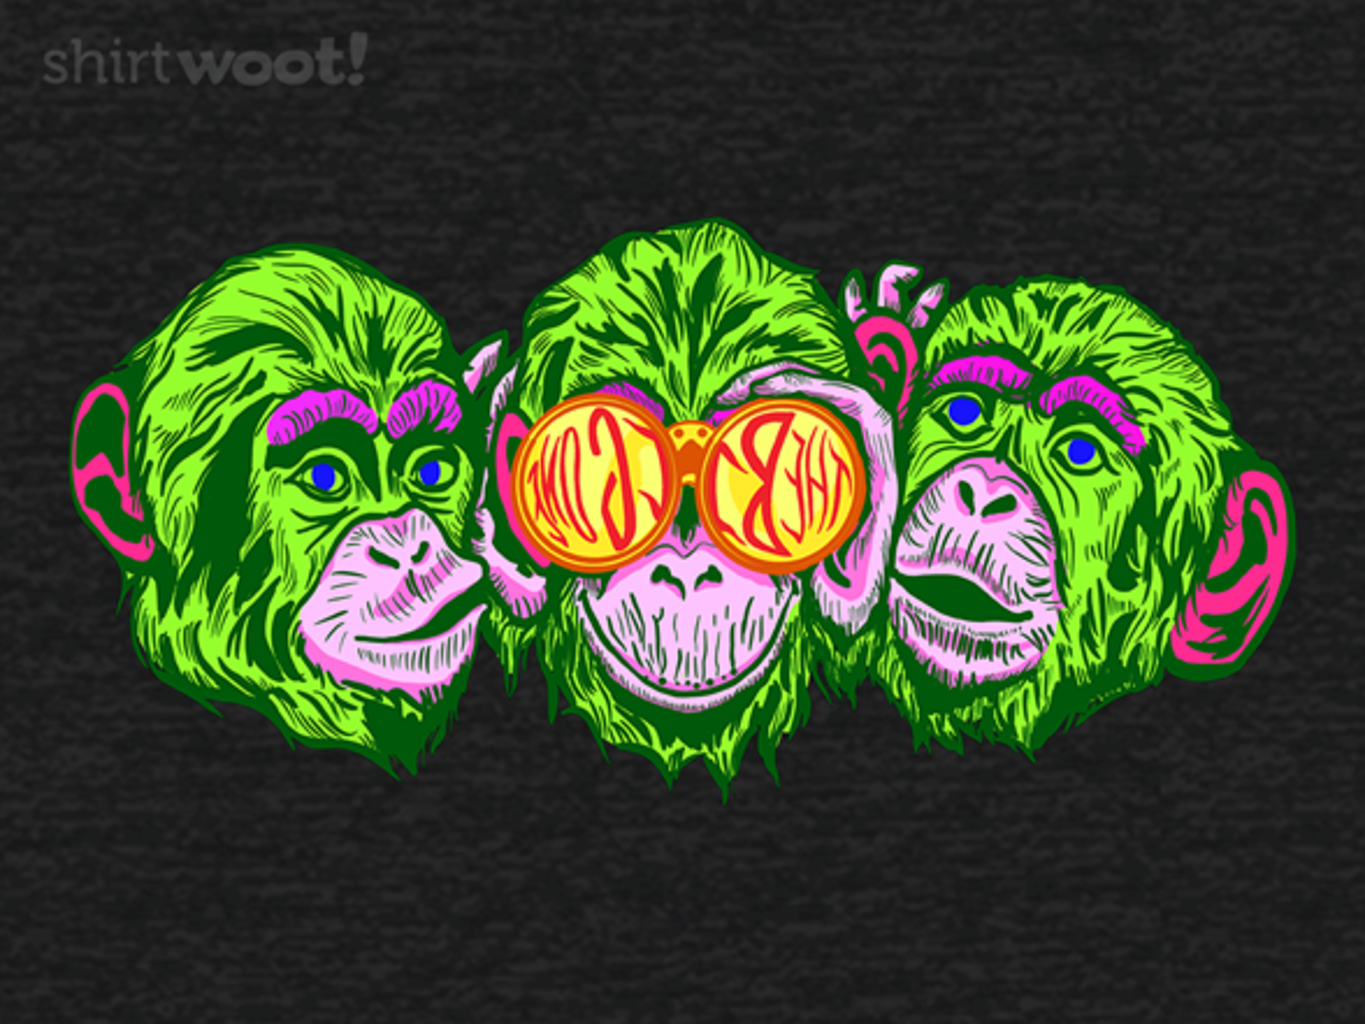 Woot!: Monkey Sees the Big One